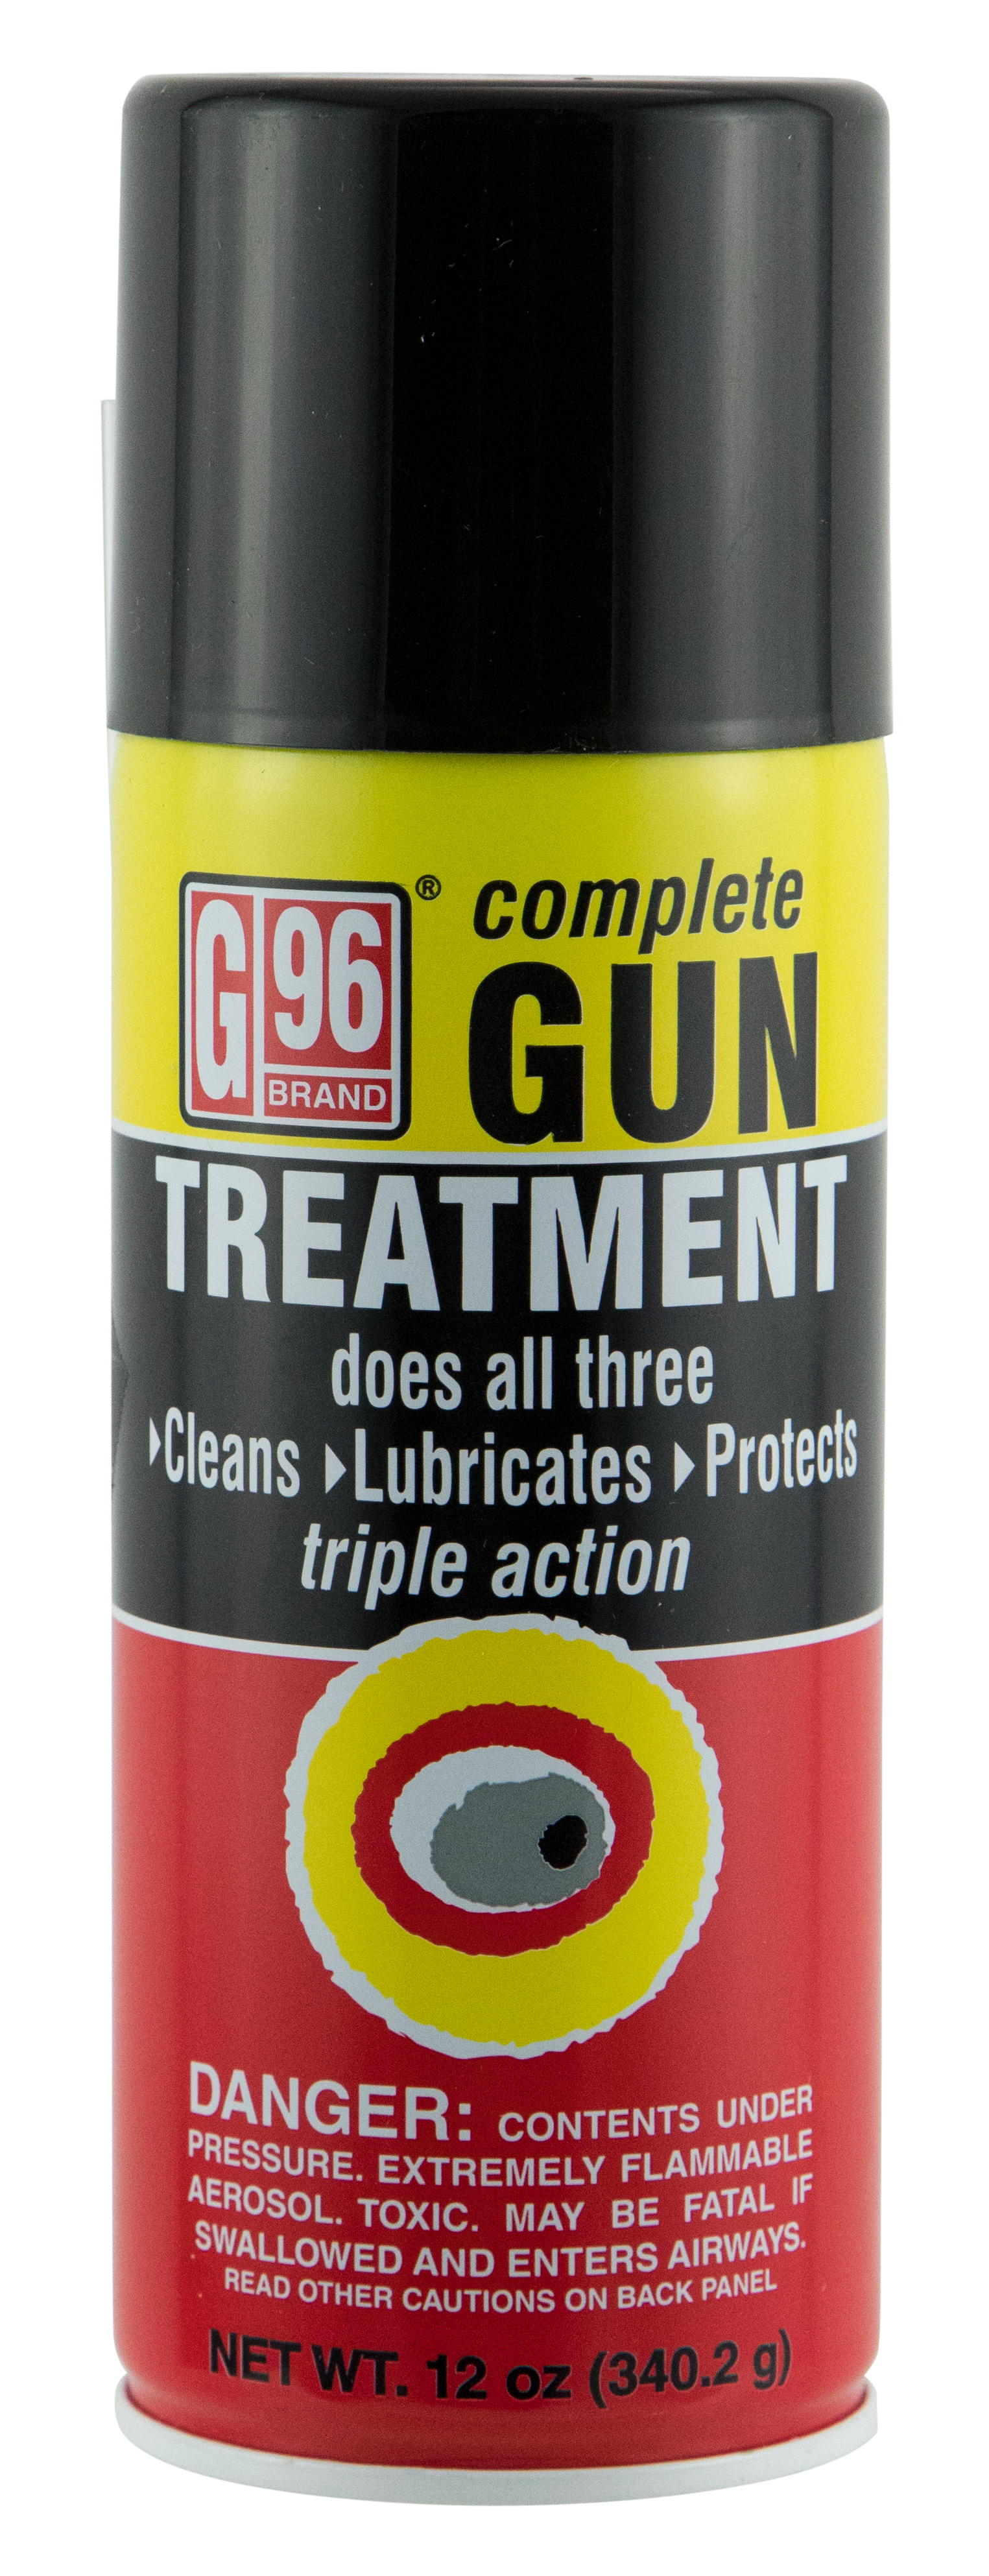 G96 1055P Gun Treatment Spray Lubricant 12 oz